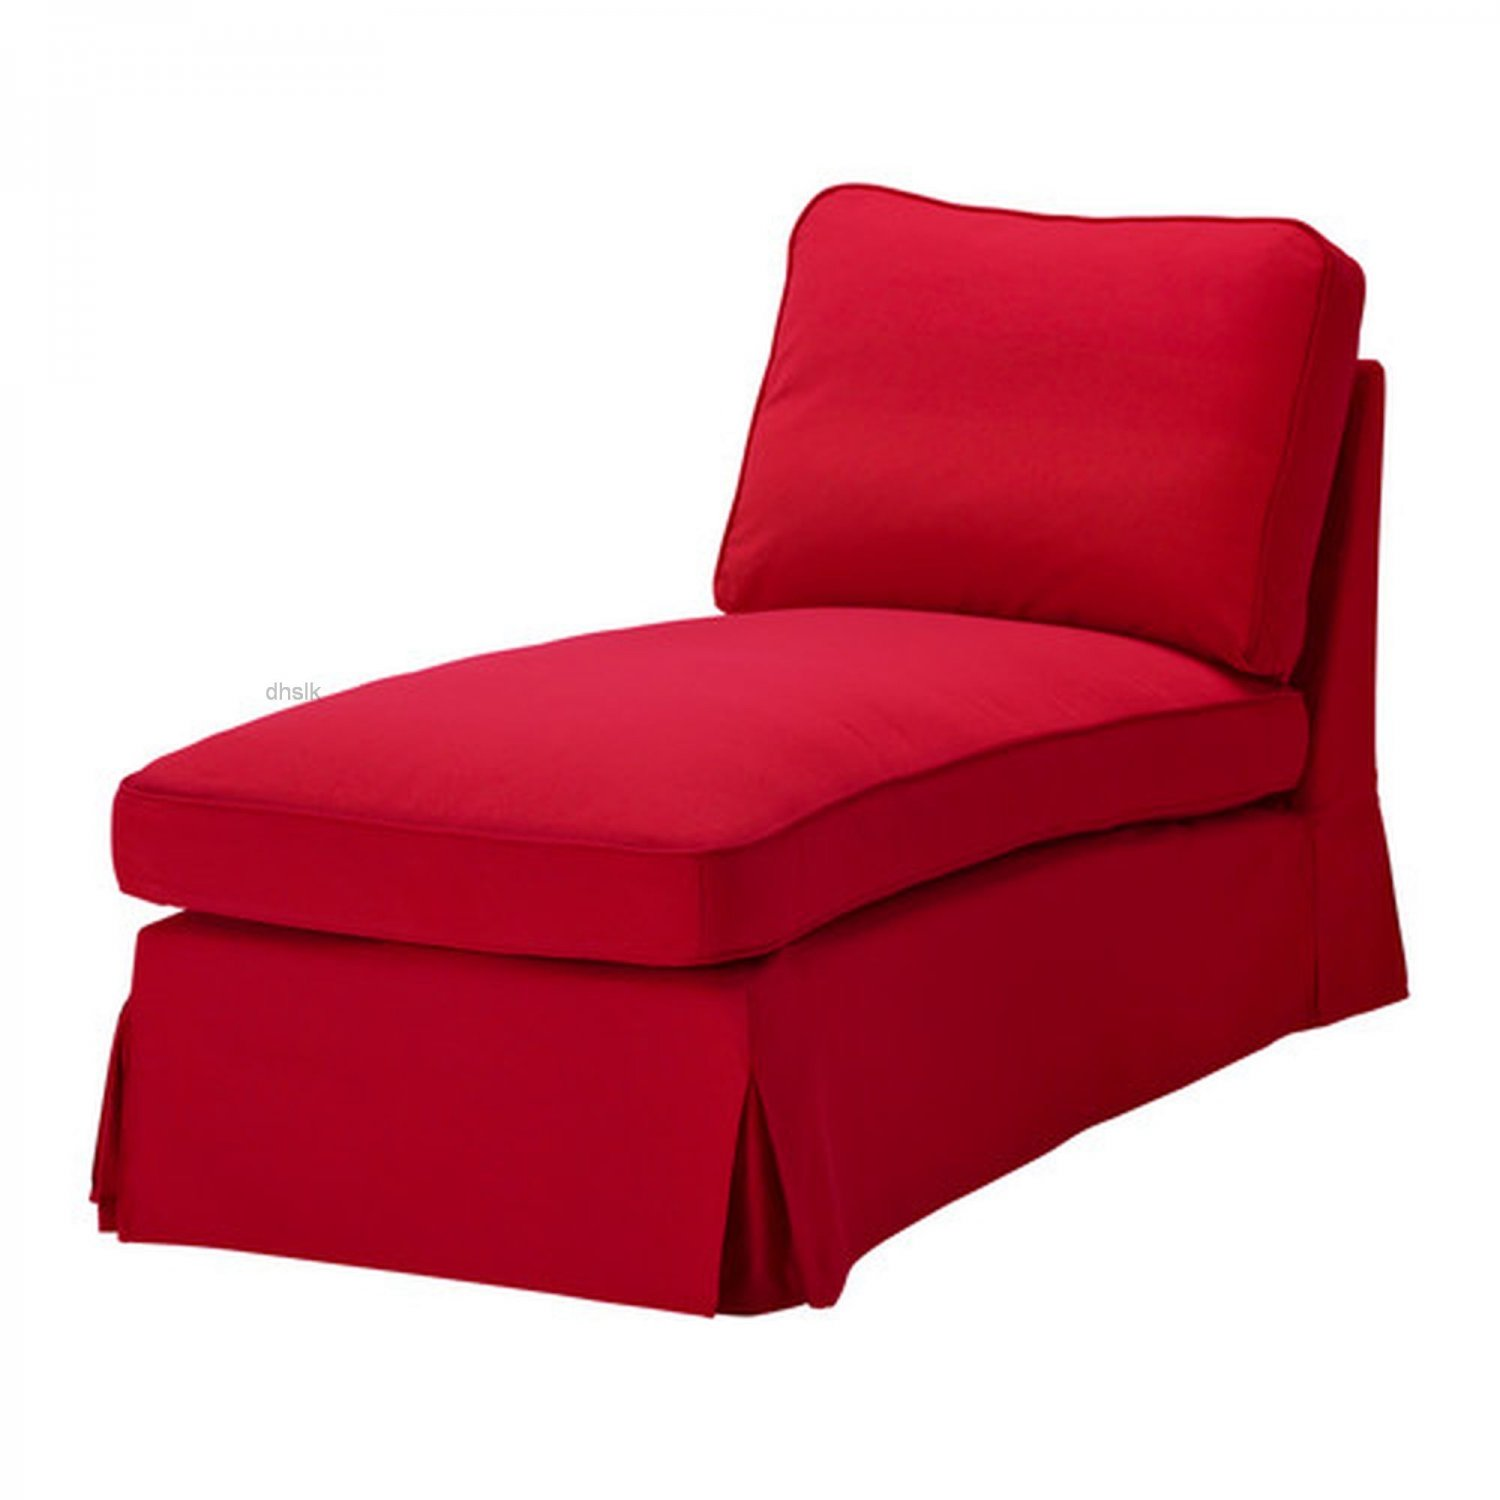 lounge chair covers australia herman miller office ikea ektorp free standing chaise cover slipcover idemo red